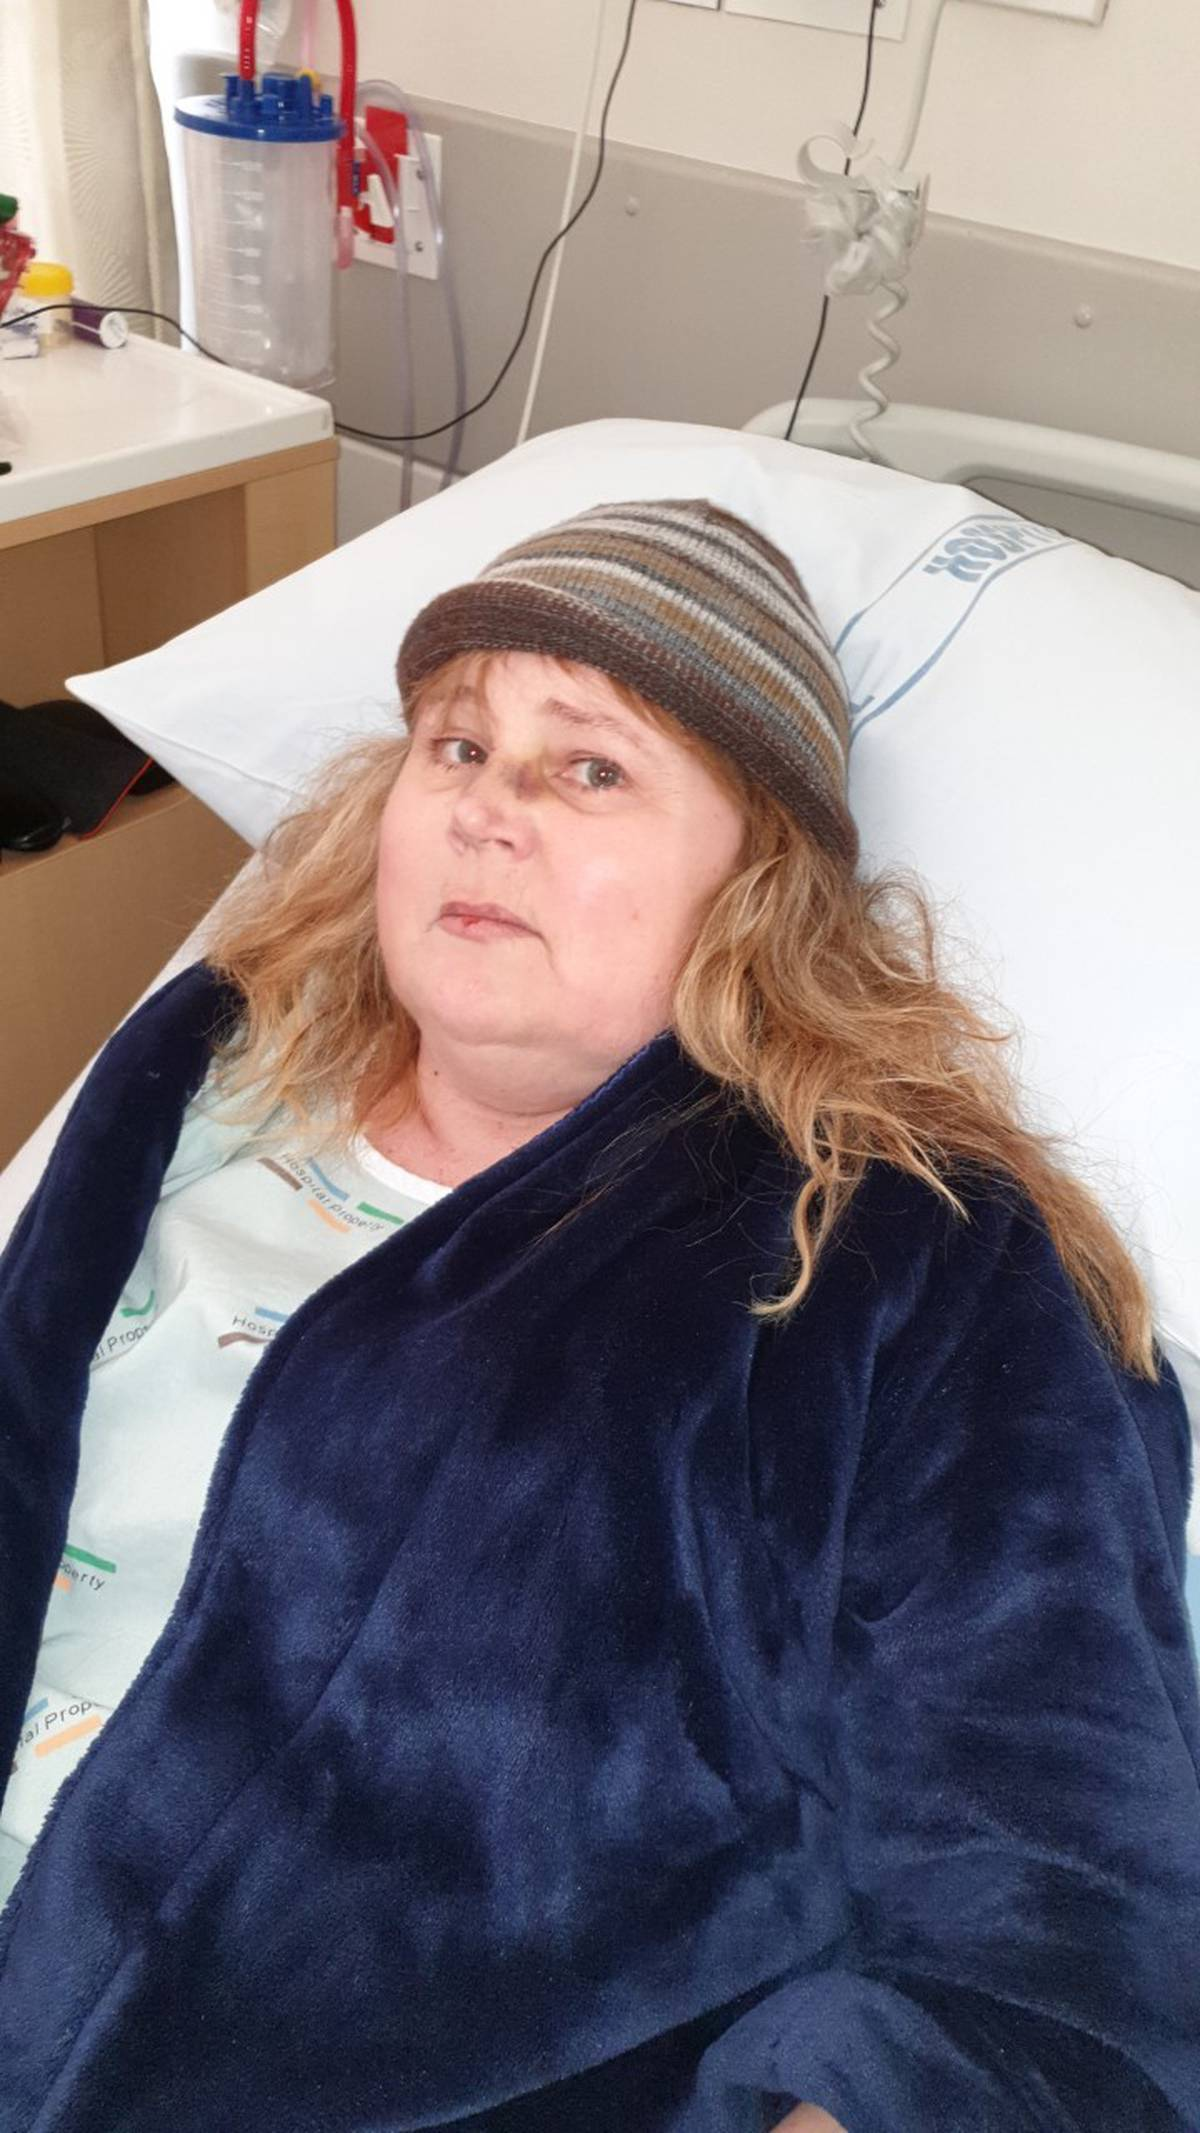 Terminal cancer patient moved from private hospital room to make way for prison inmate